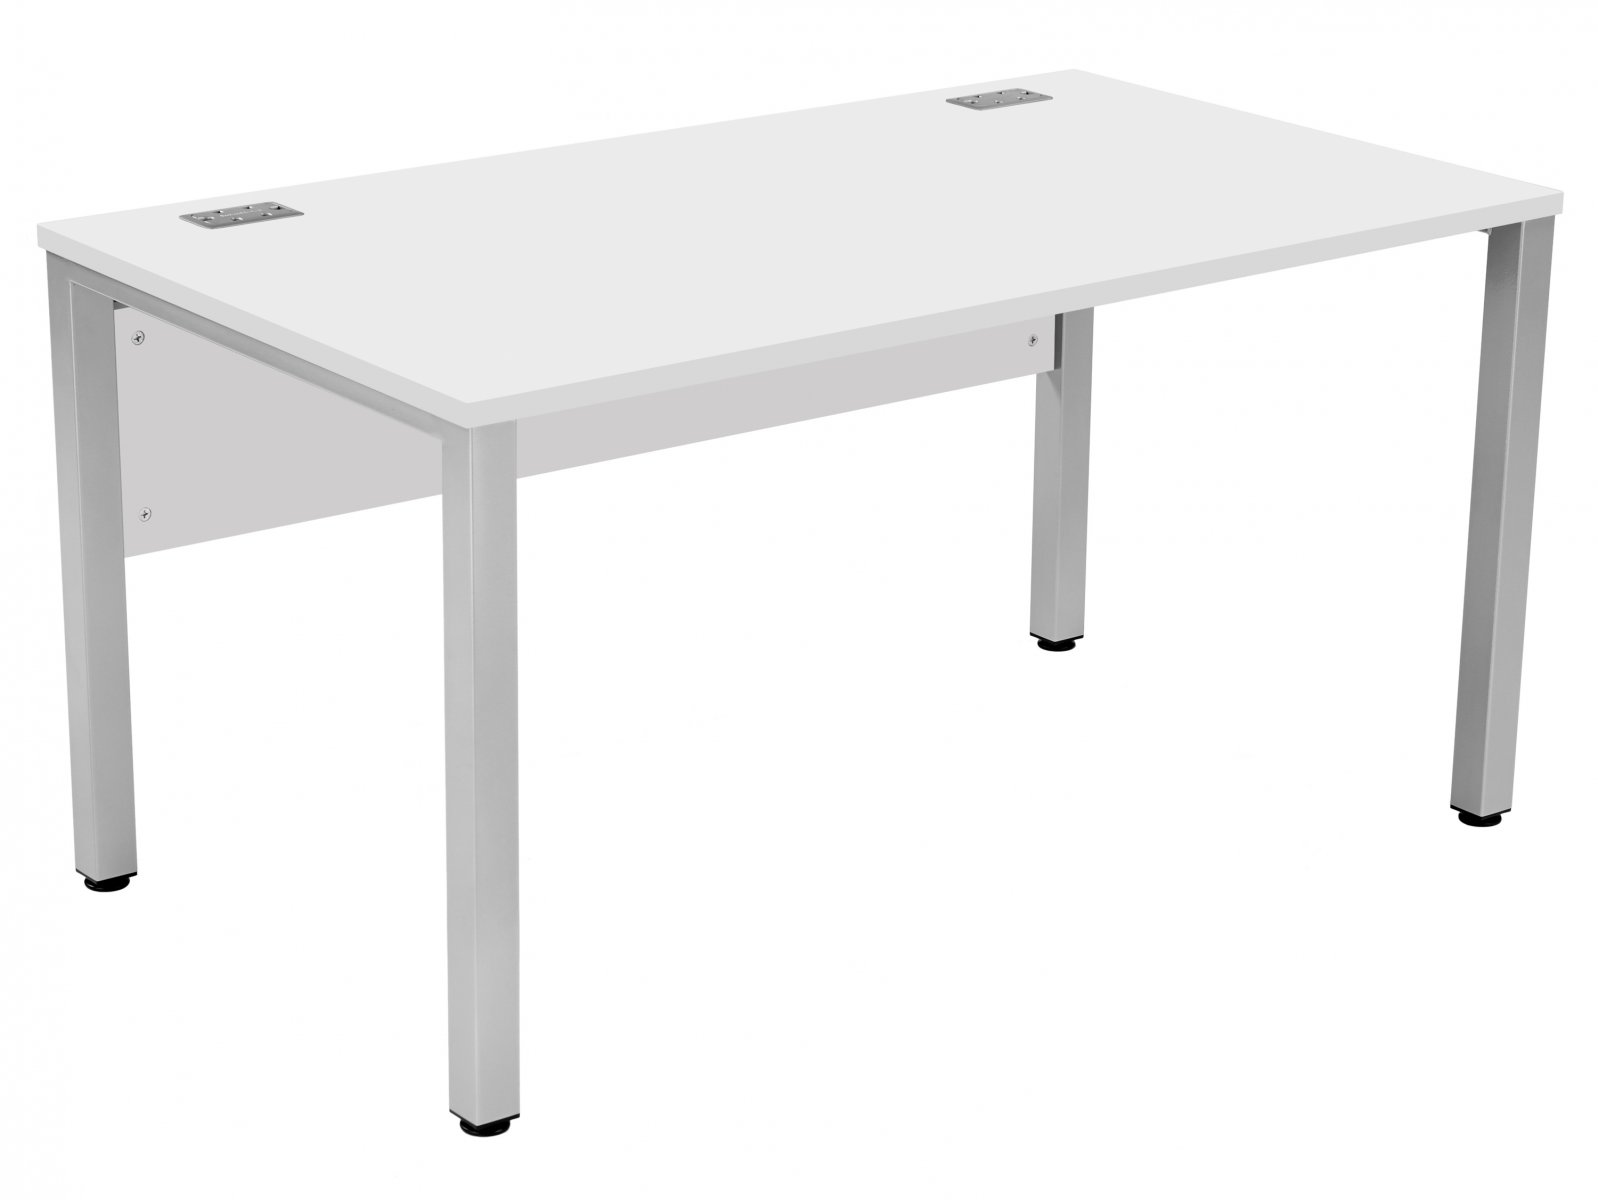 Fraction 3 Rectangular 140 Desk - White with Silver Frame